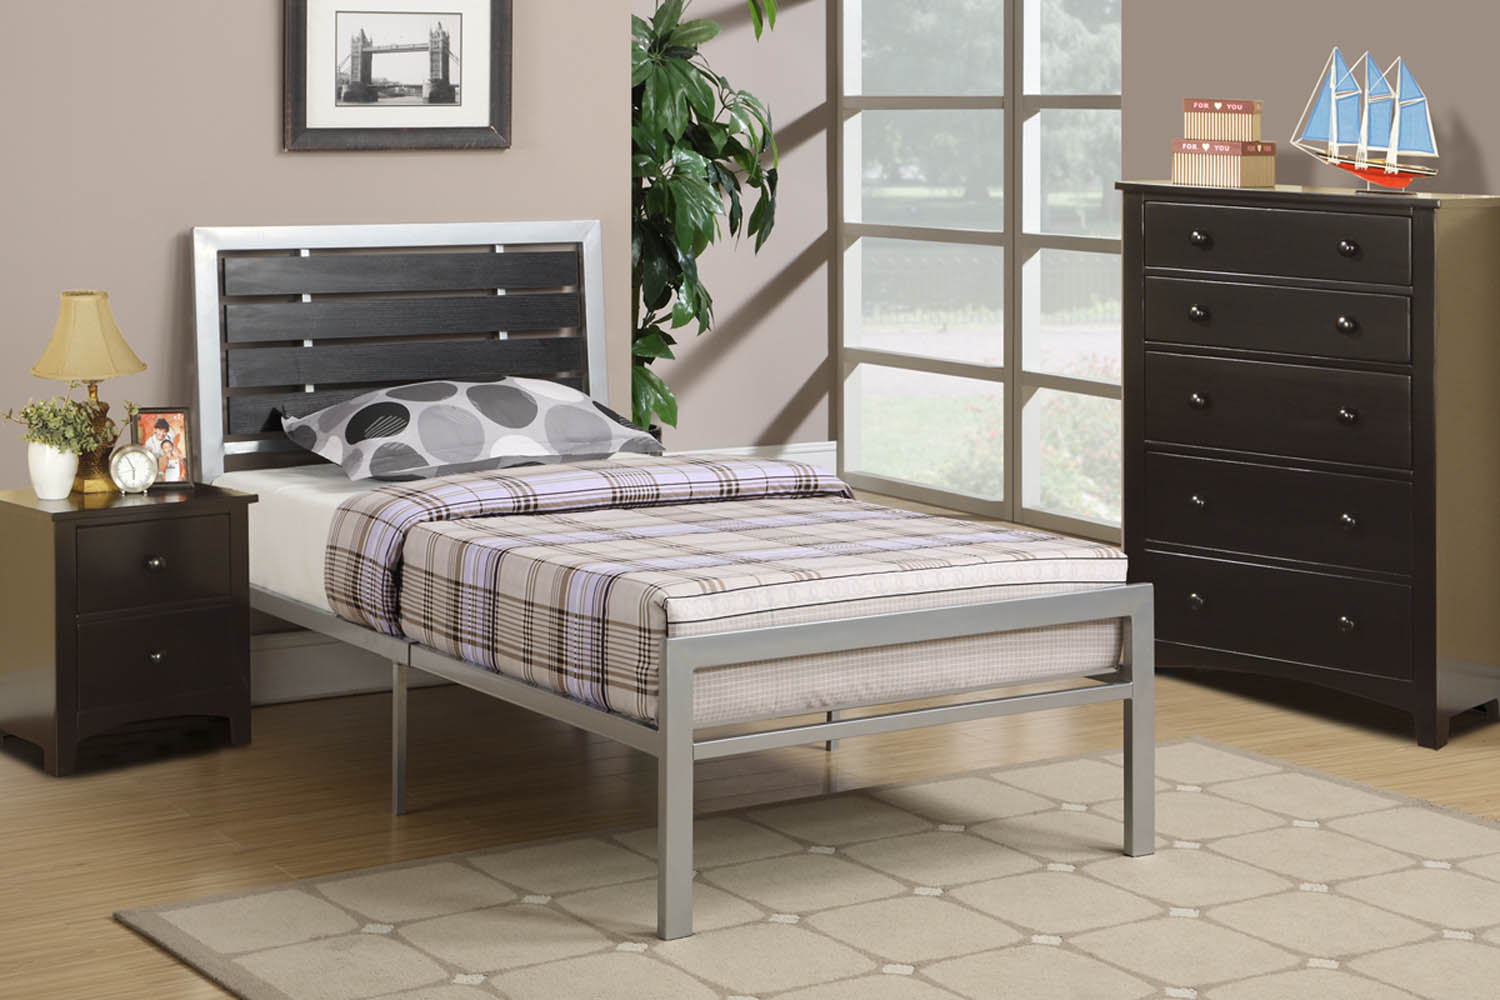 contemporary grey and black metal twin bed frame. Black Bedroom Furniture Sets. Home Design Ideas